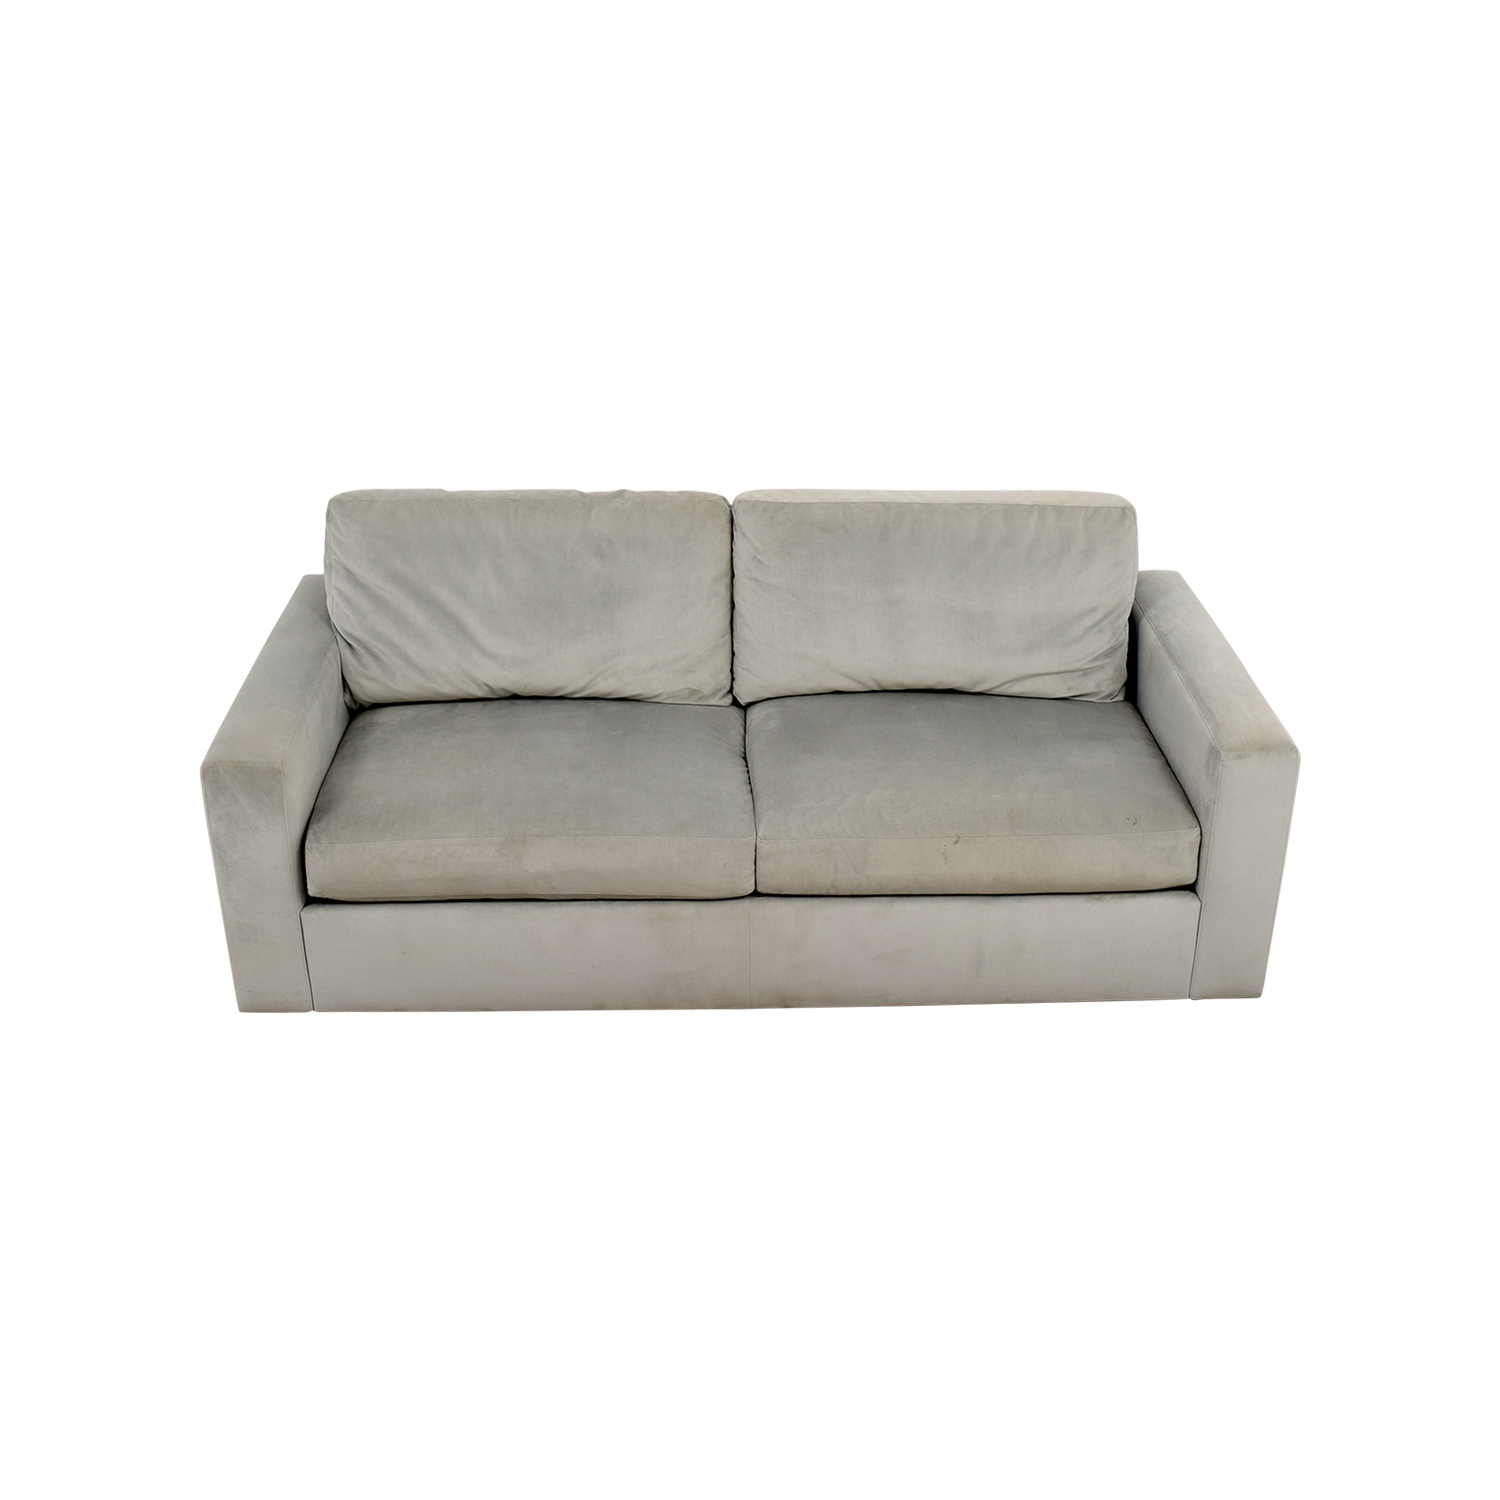 Room & Board Room & Board Pearl Grey Two-Cushion Sofa on sale